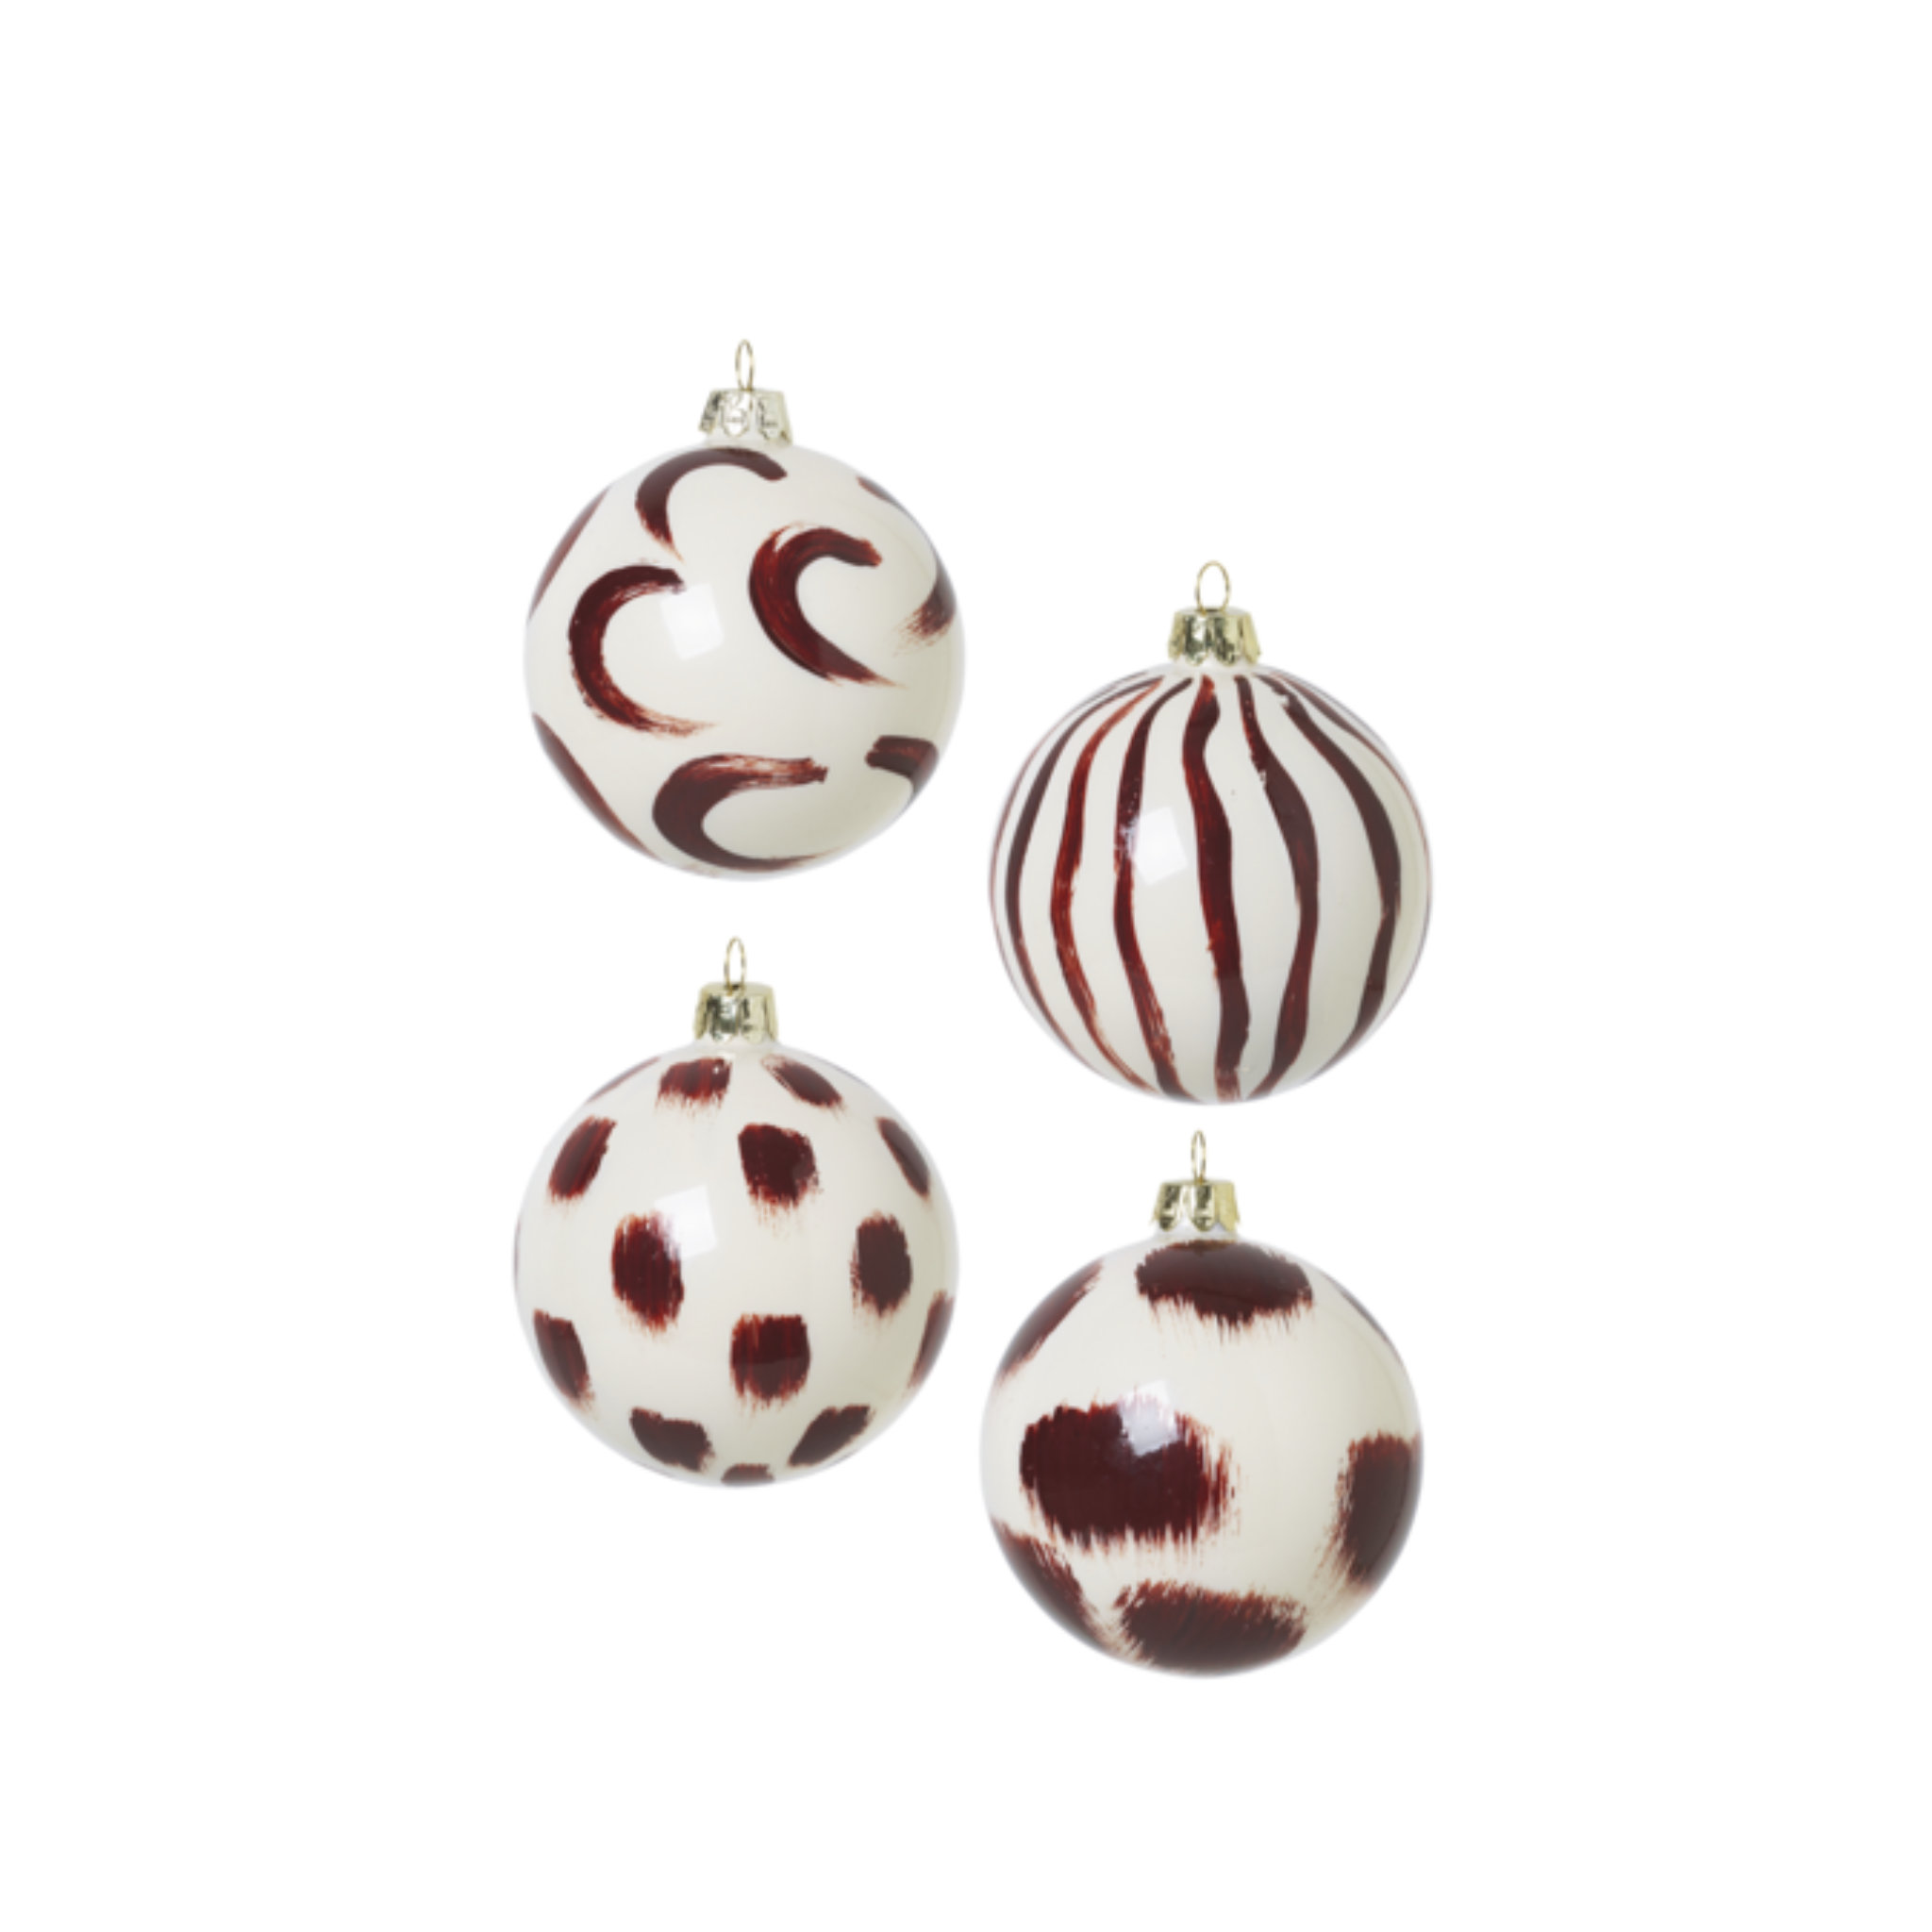 Christmas Hand Painted Glass Ornaments- Red Brown